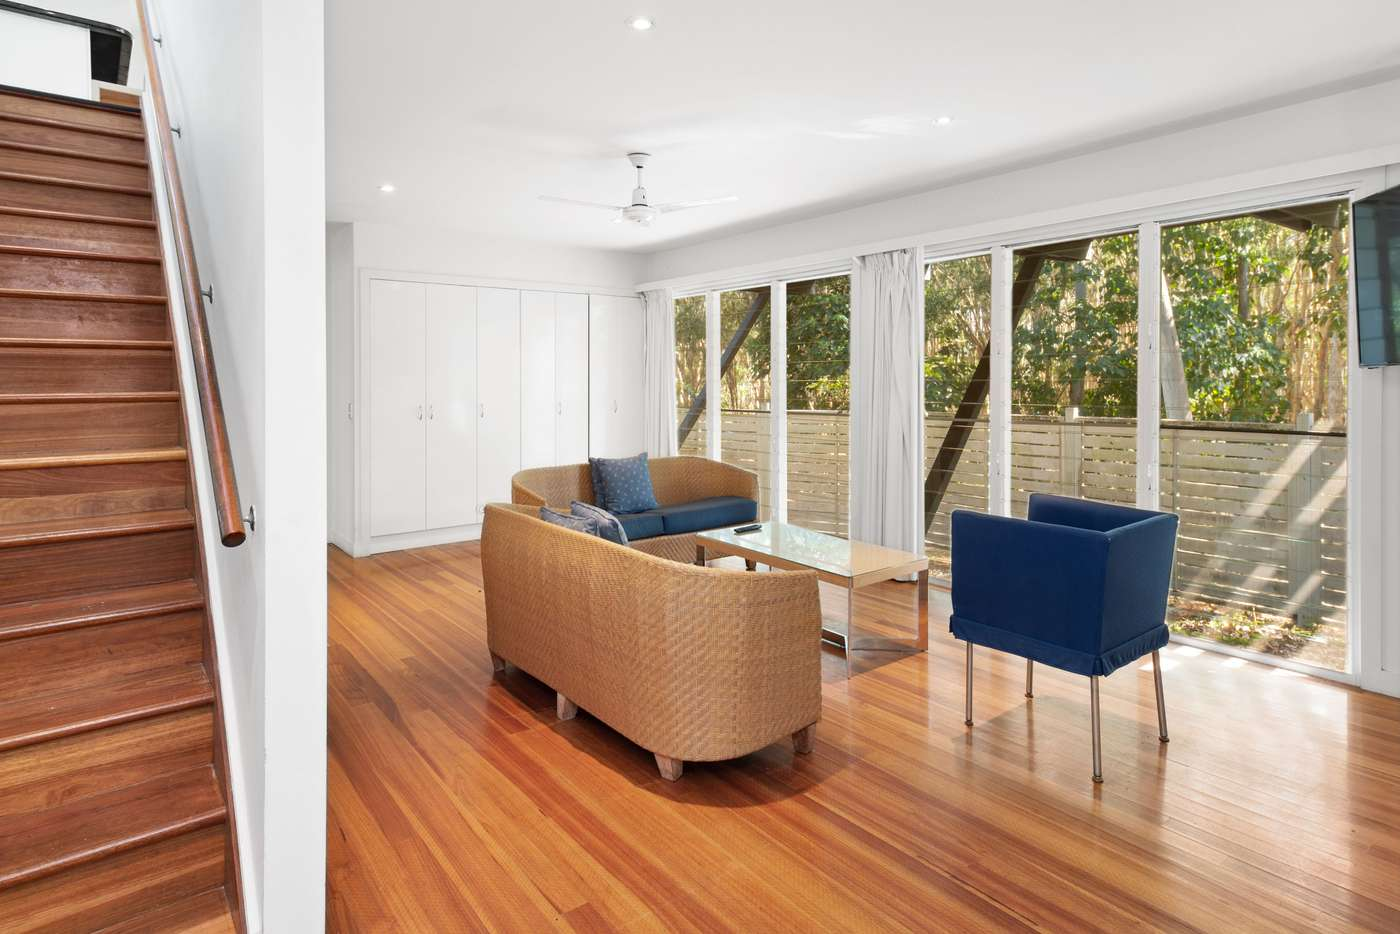 Sixth view of Homely house listing, Lot 16 Currigee Road, South Stradbroke QLD 4216